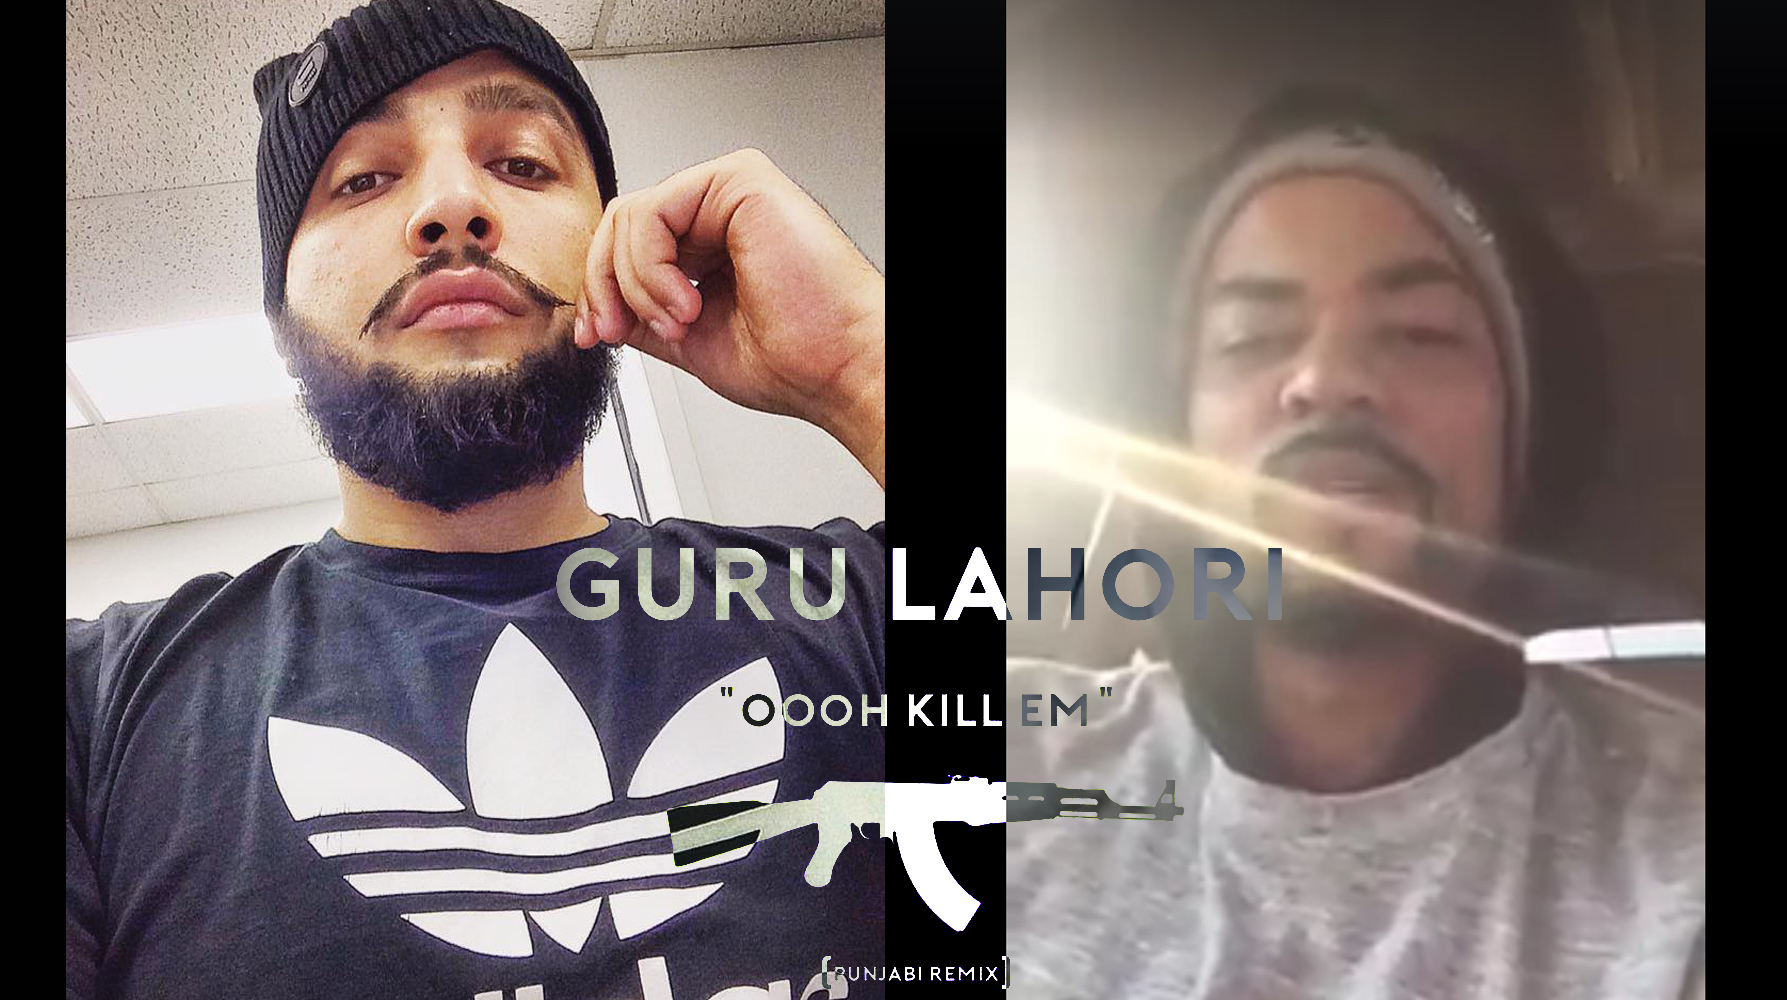 bohemia reaction guru lahori ooh kill em